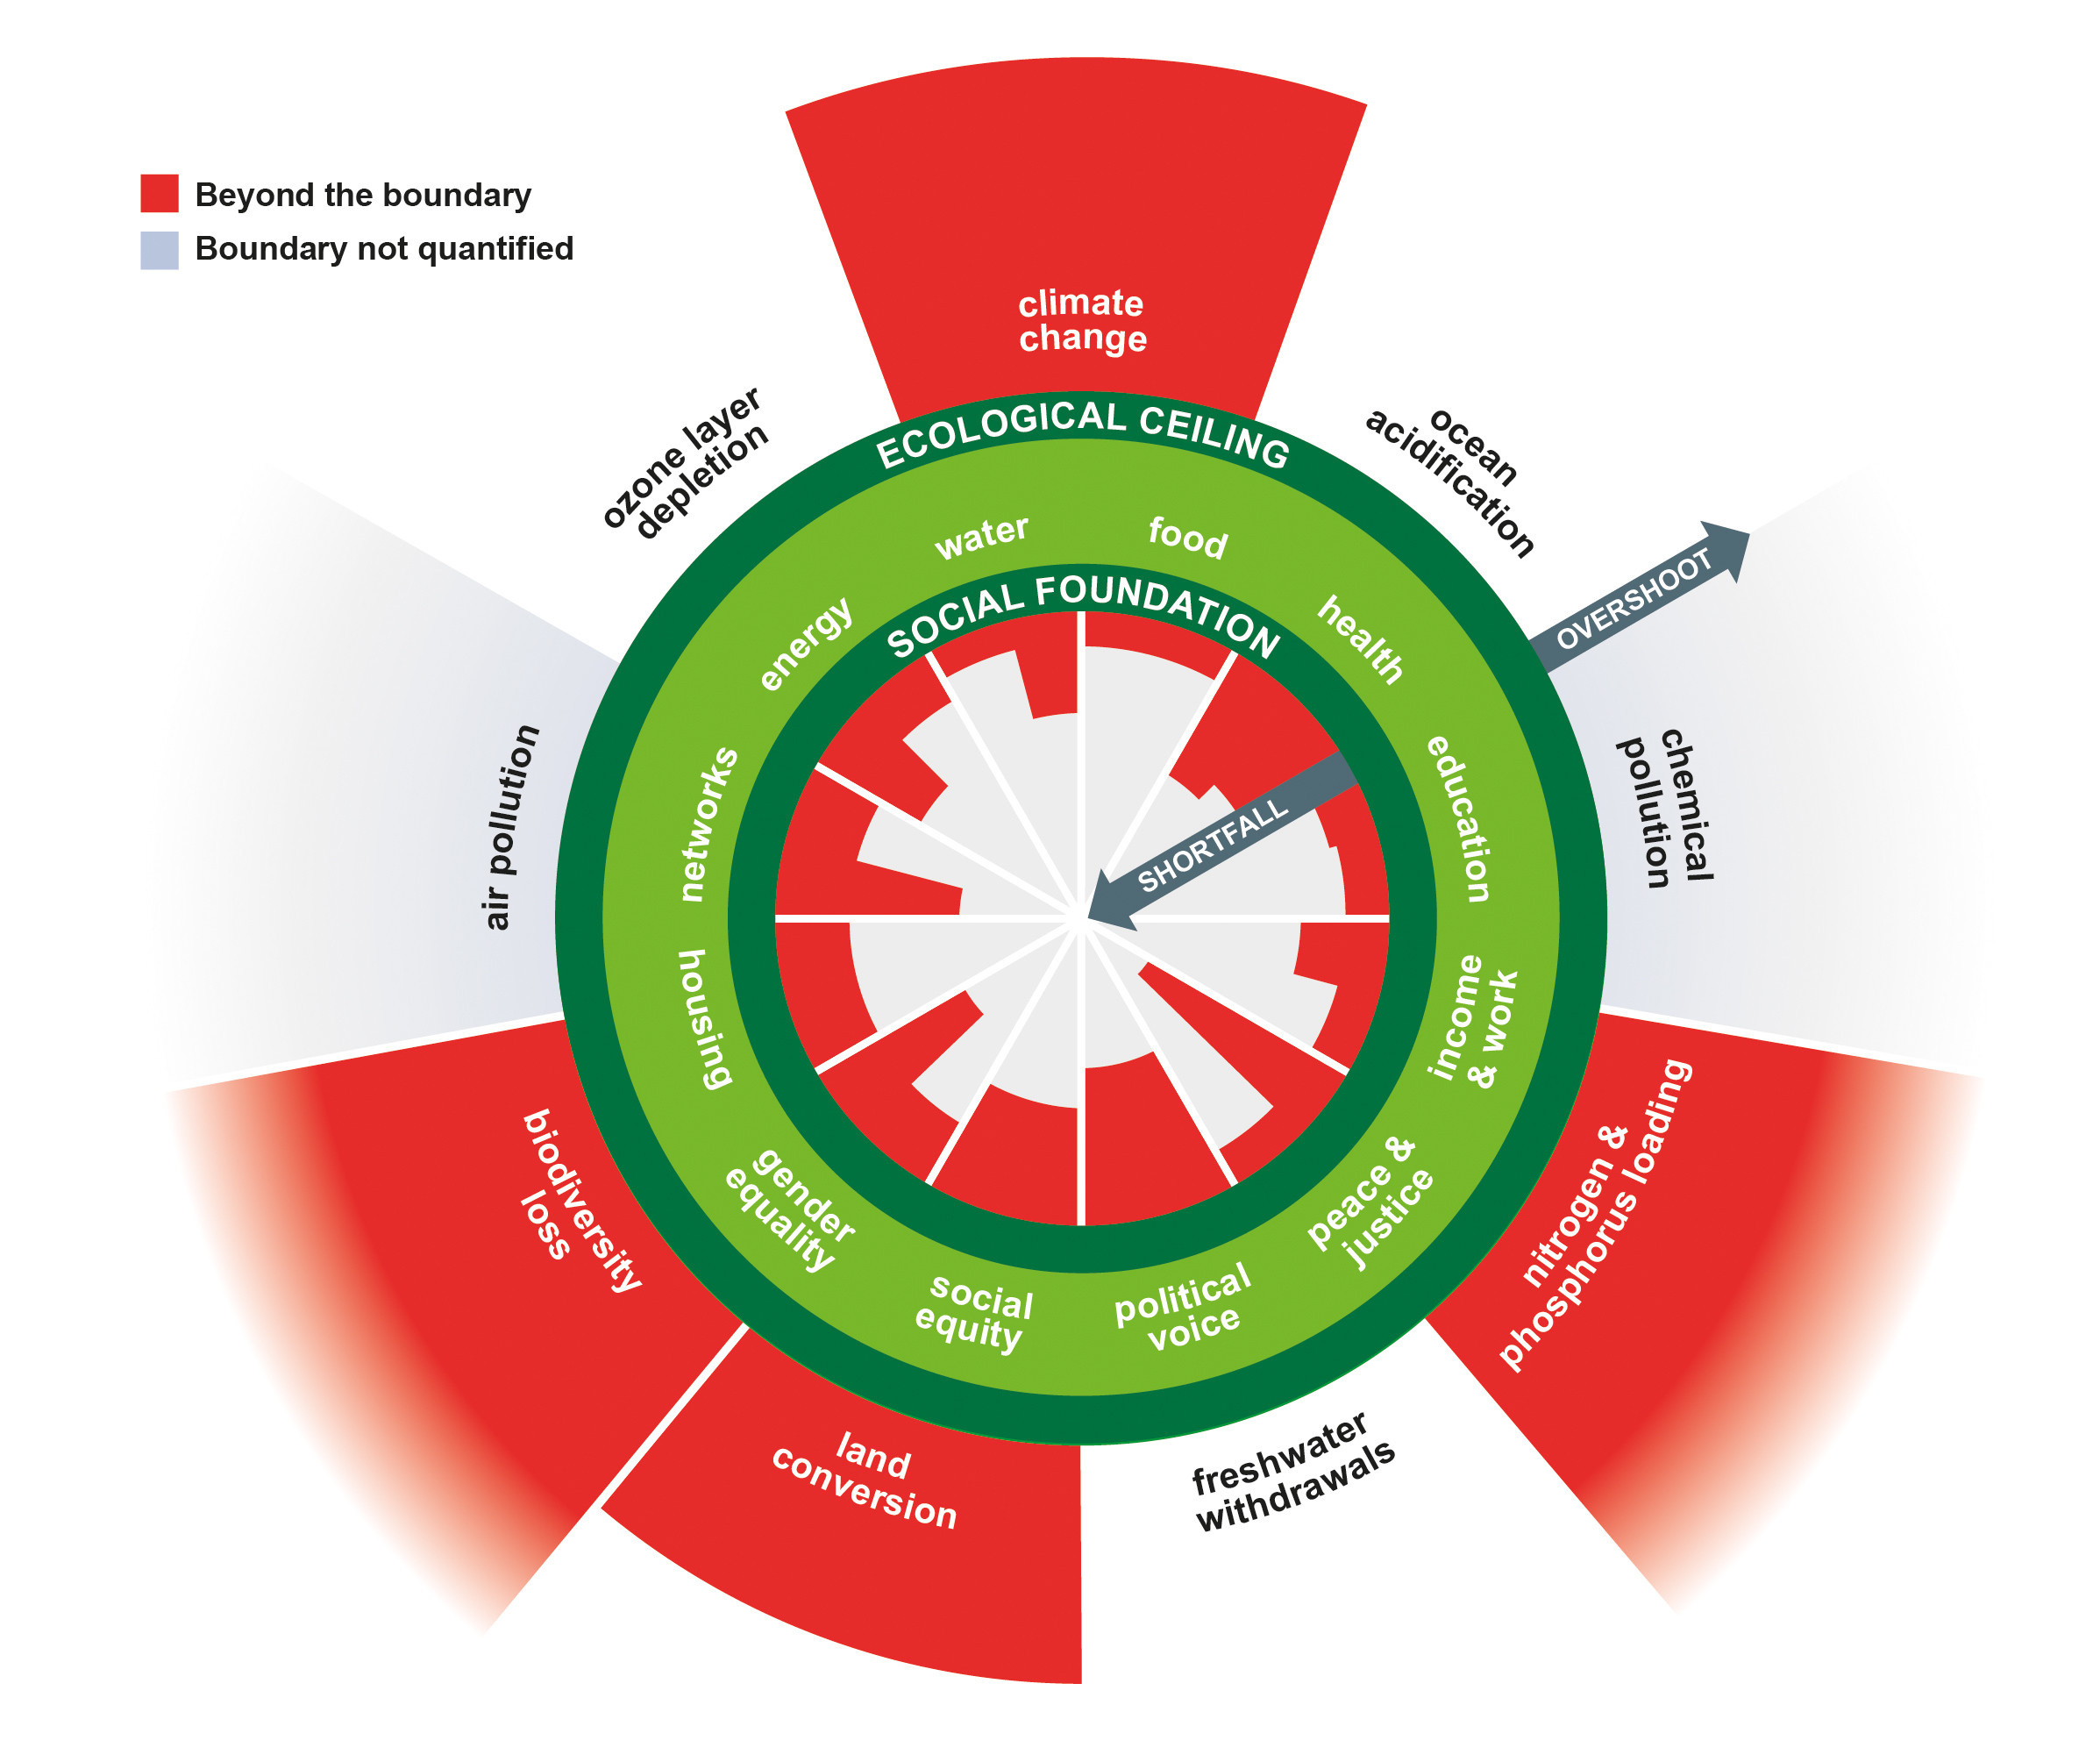 Image: Kate Raworth and Christian Guthier/The Lancet Planetary Health